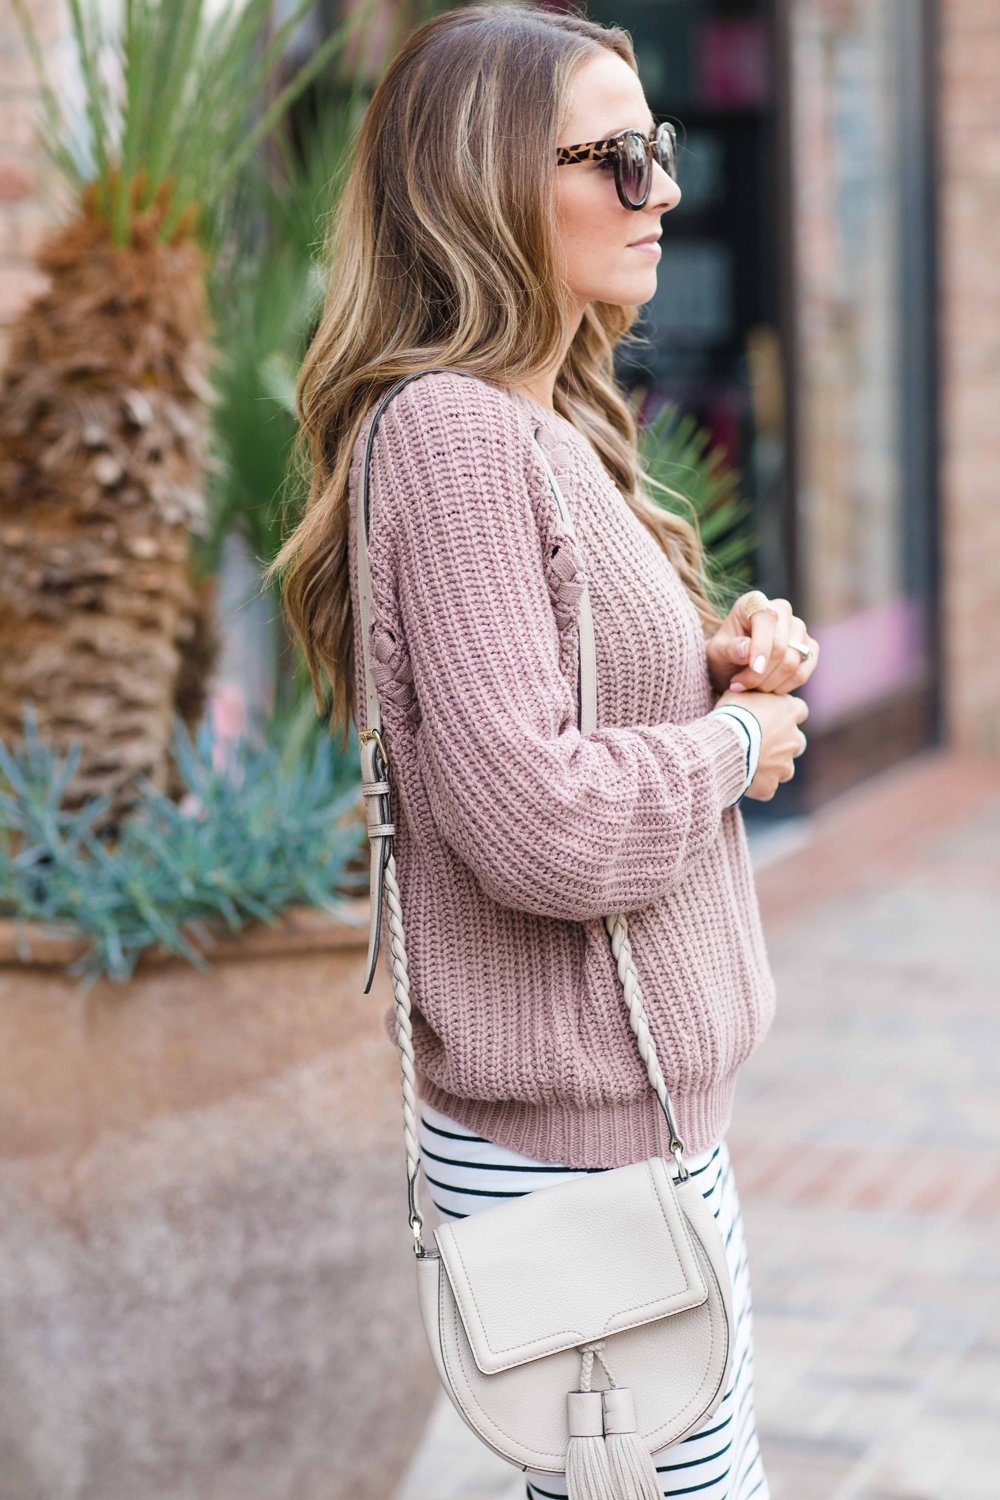 Merrick's Art Cable Knit Sweater